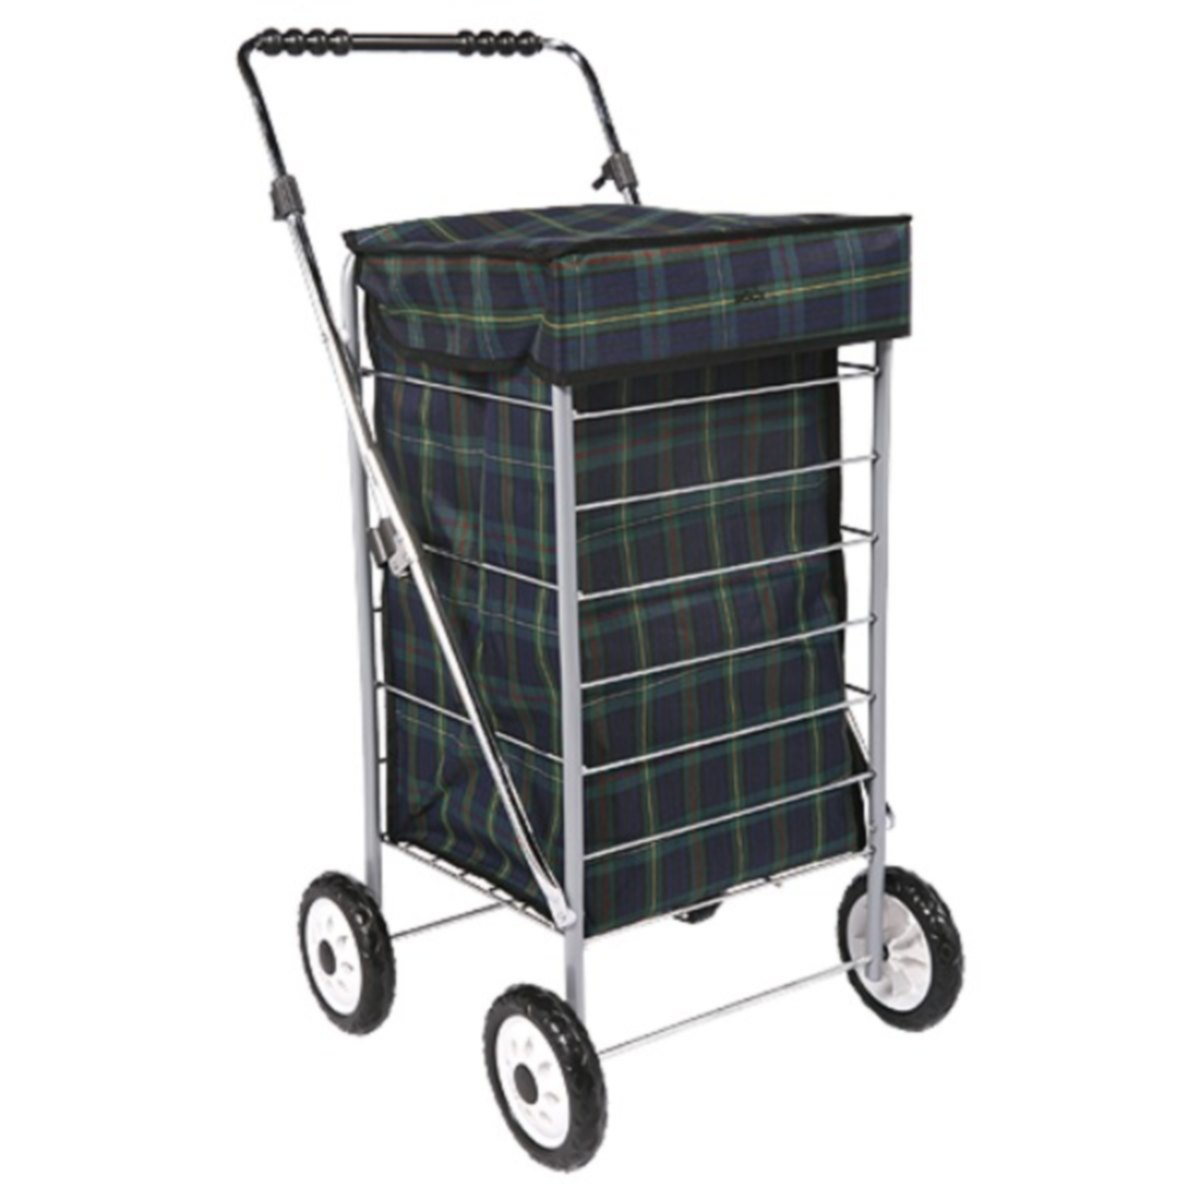 SHOPPING CHIC?: A wheeled shopping trolley with snazzy tartan material. Picture: Google